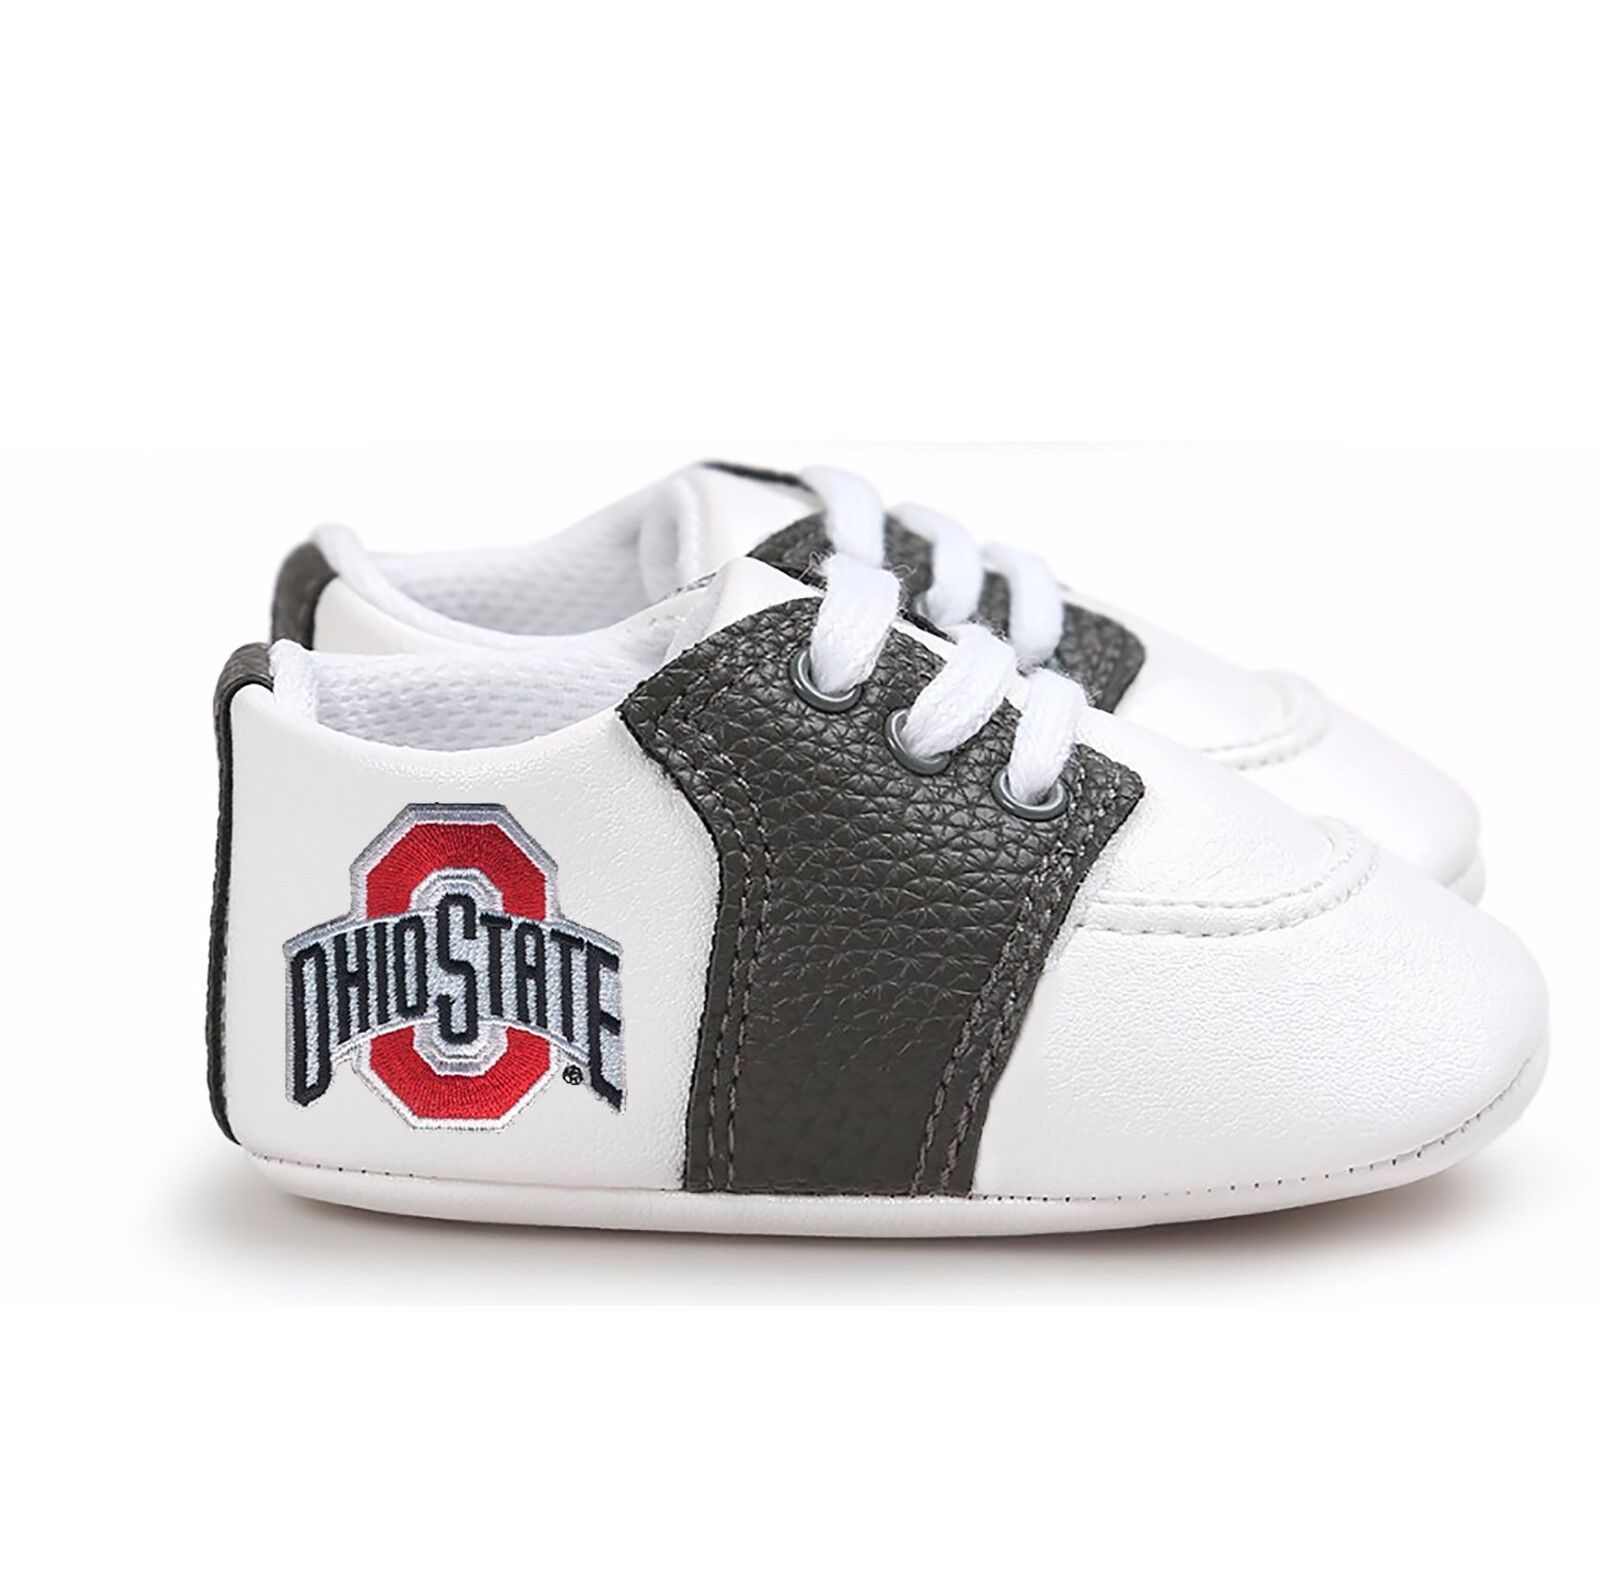 Ohio State Buckeyes Pre-Walker Baby Shoes - Black